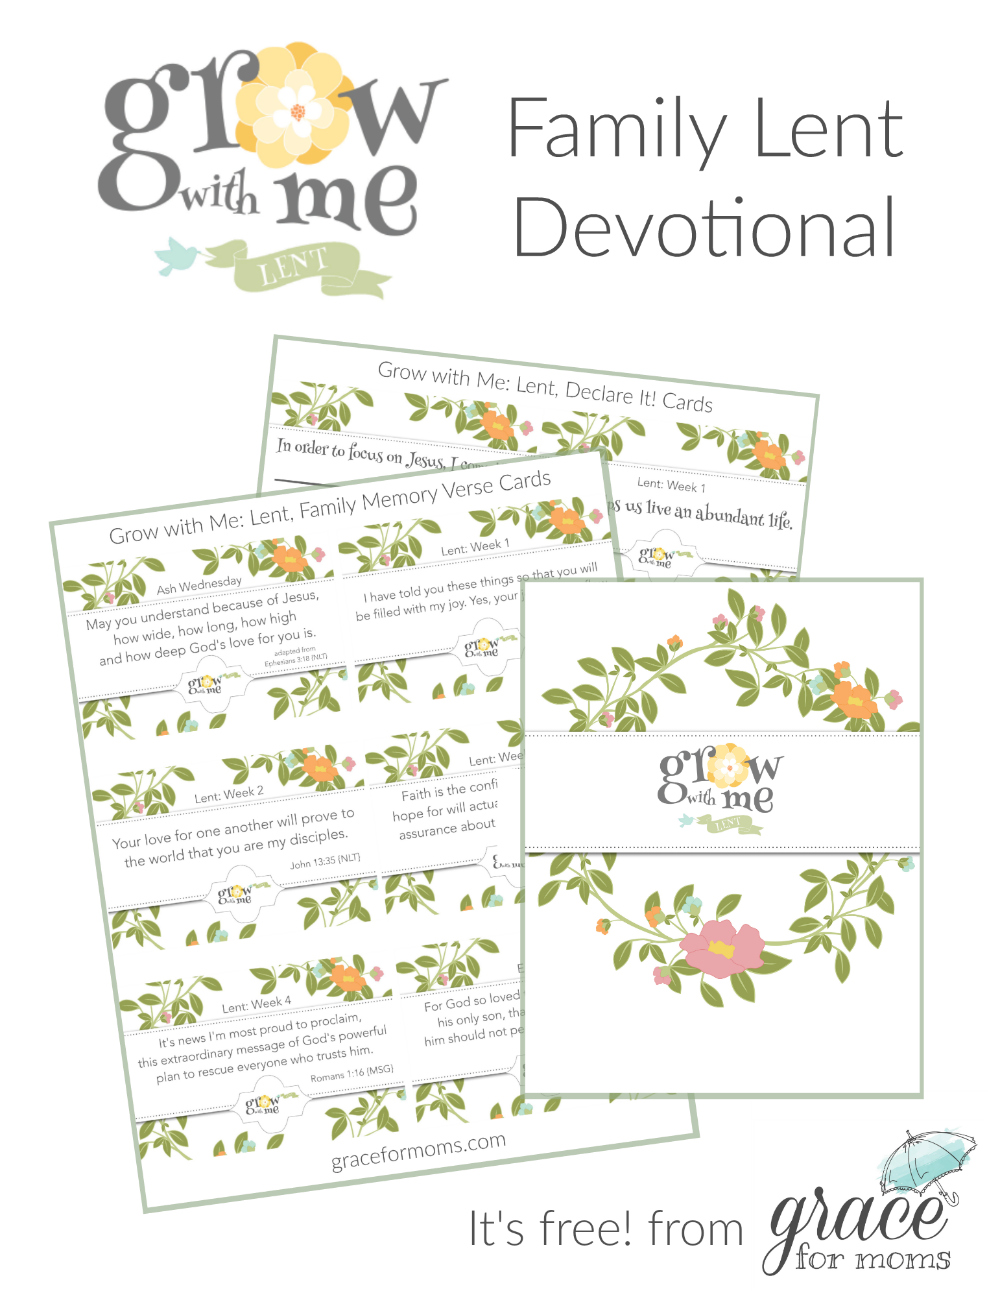 Grow with Me Family Lent Devotional